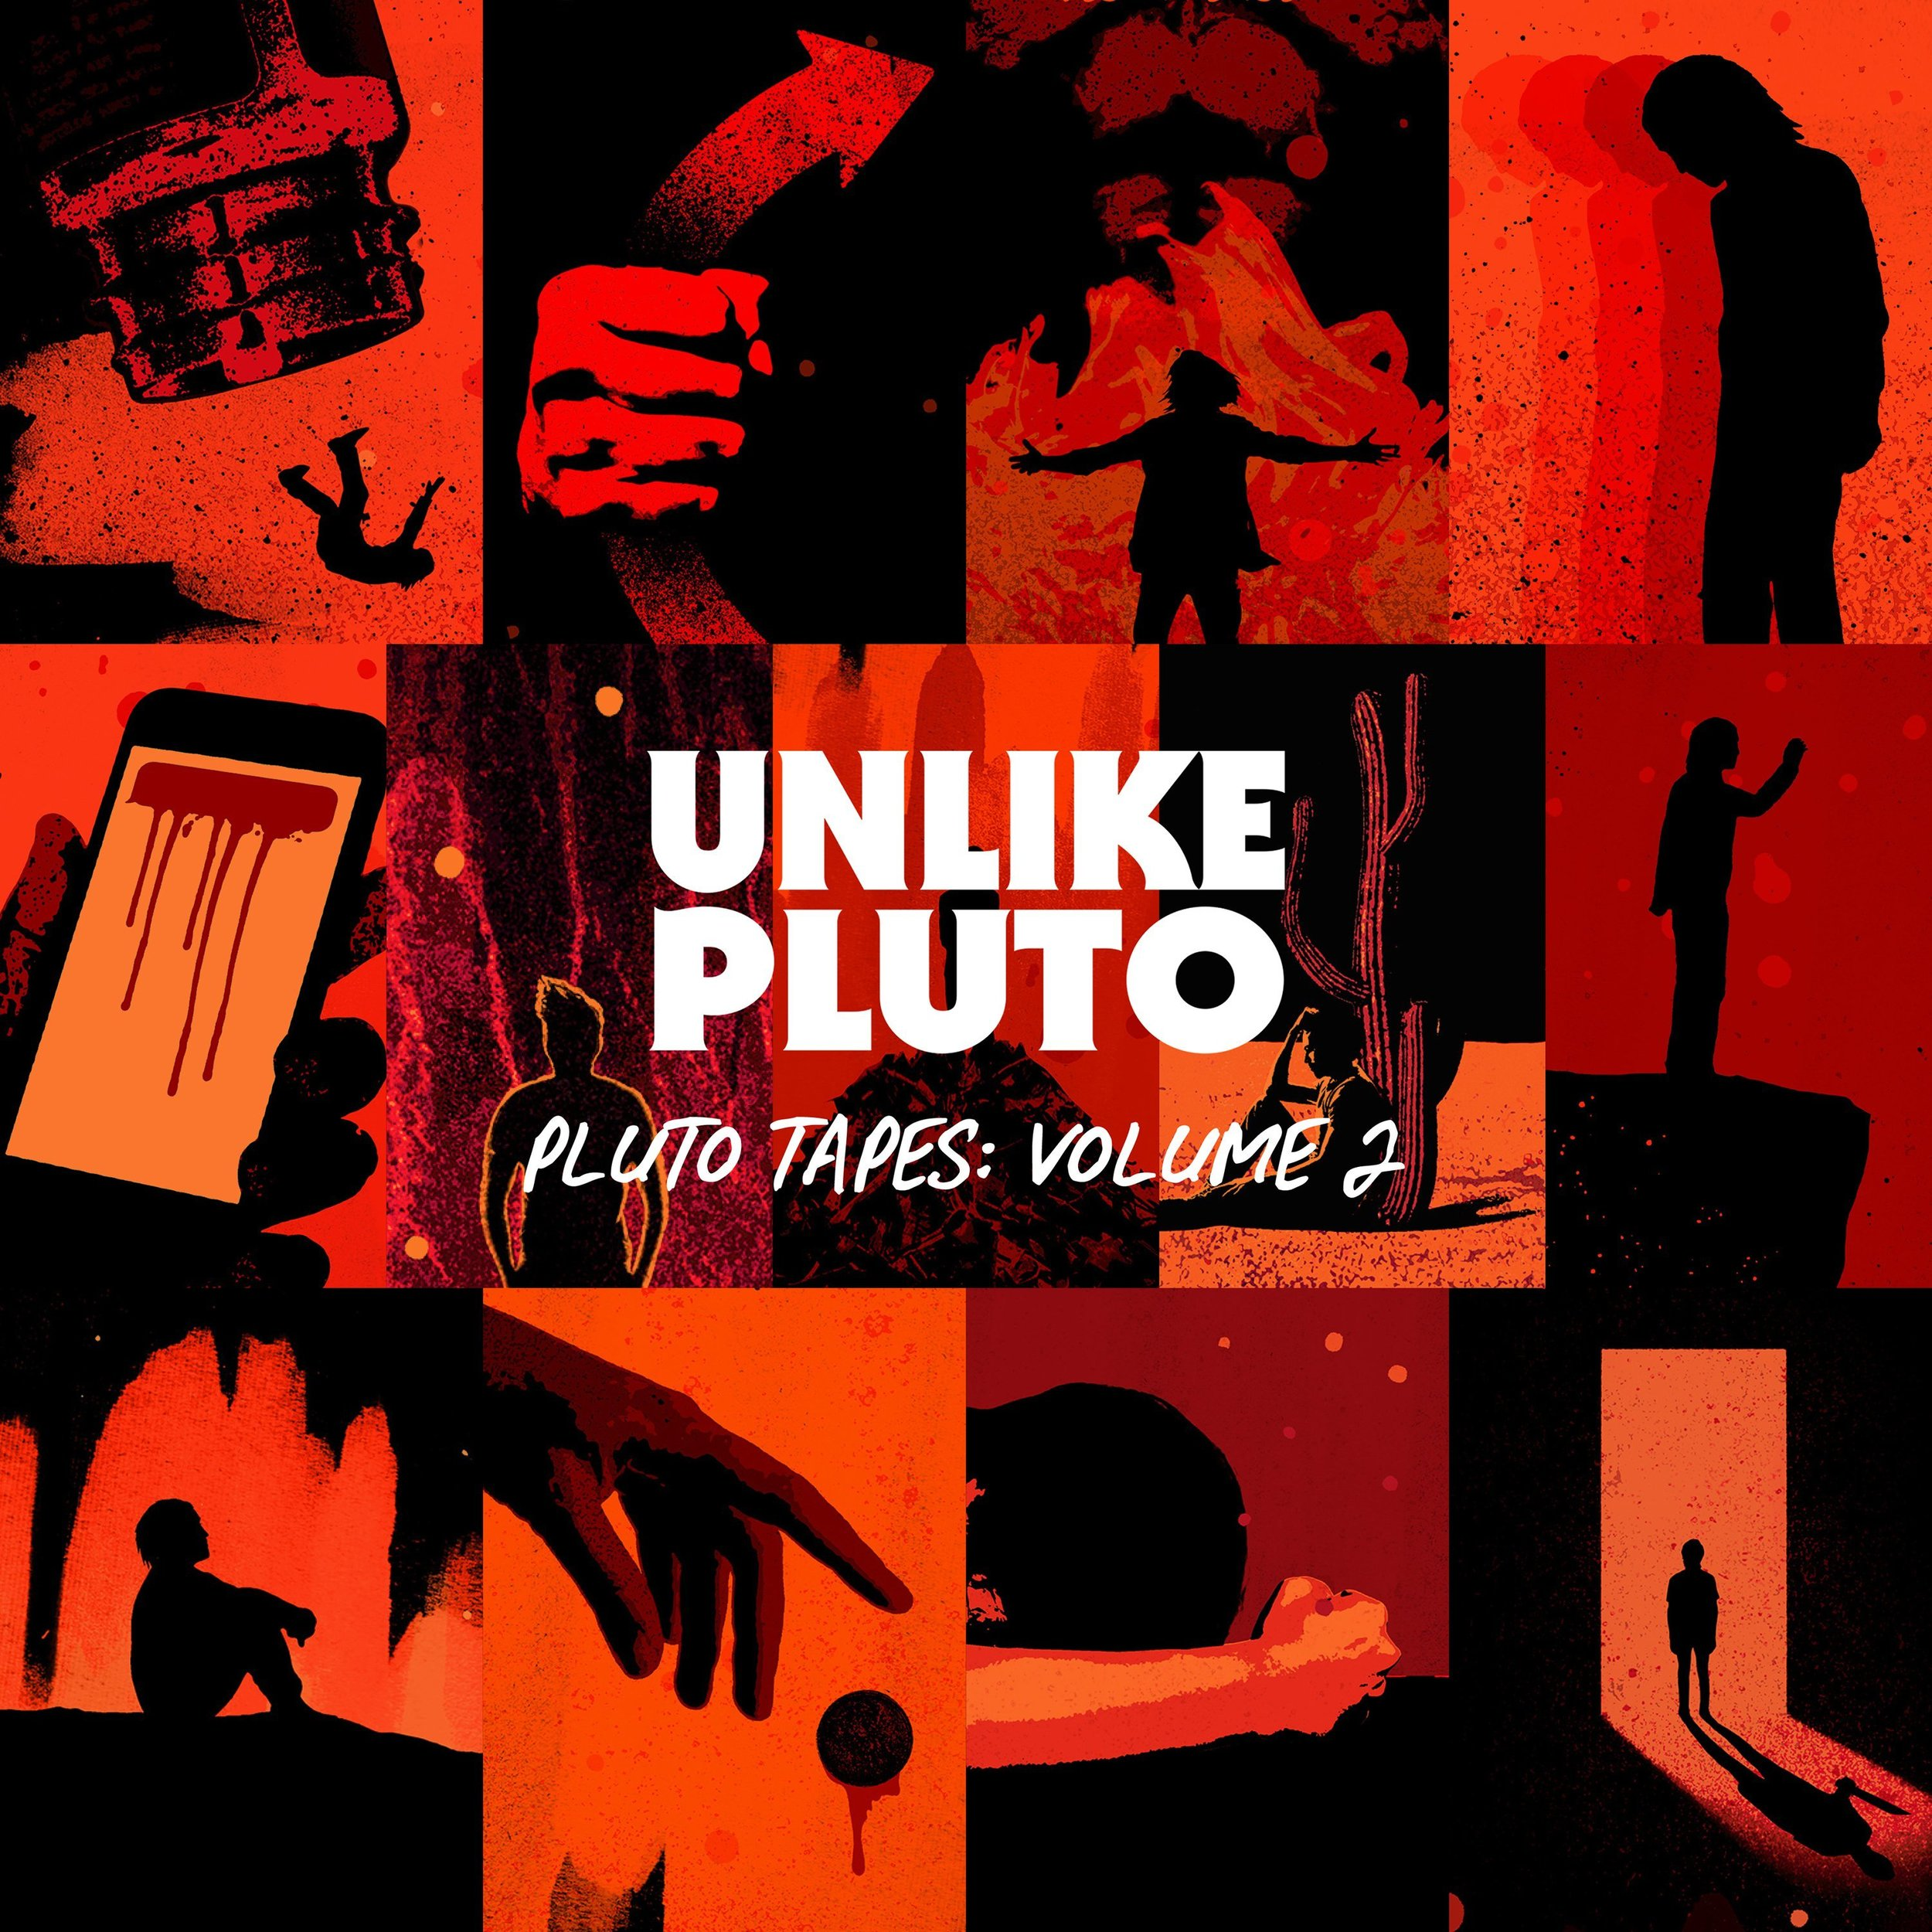 UNLIKE PLUTO PLUTO TAPES: VOL 2 [S/R]